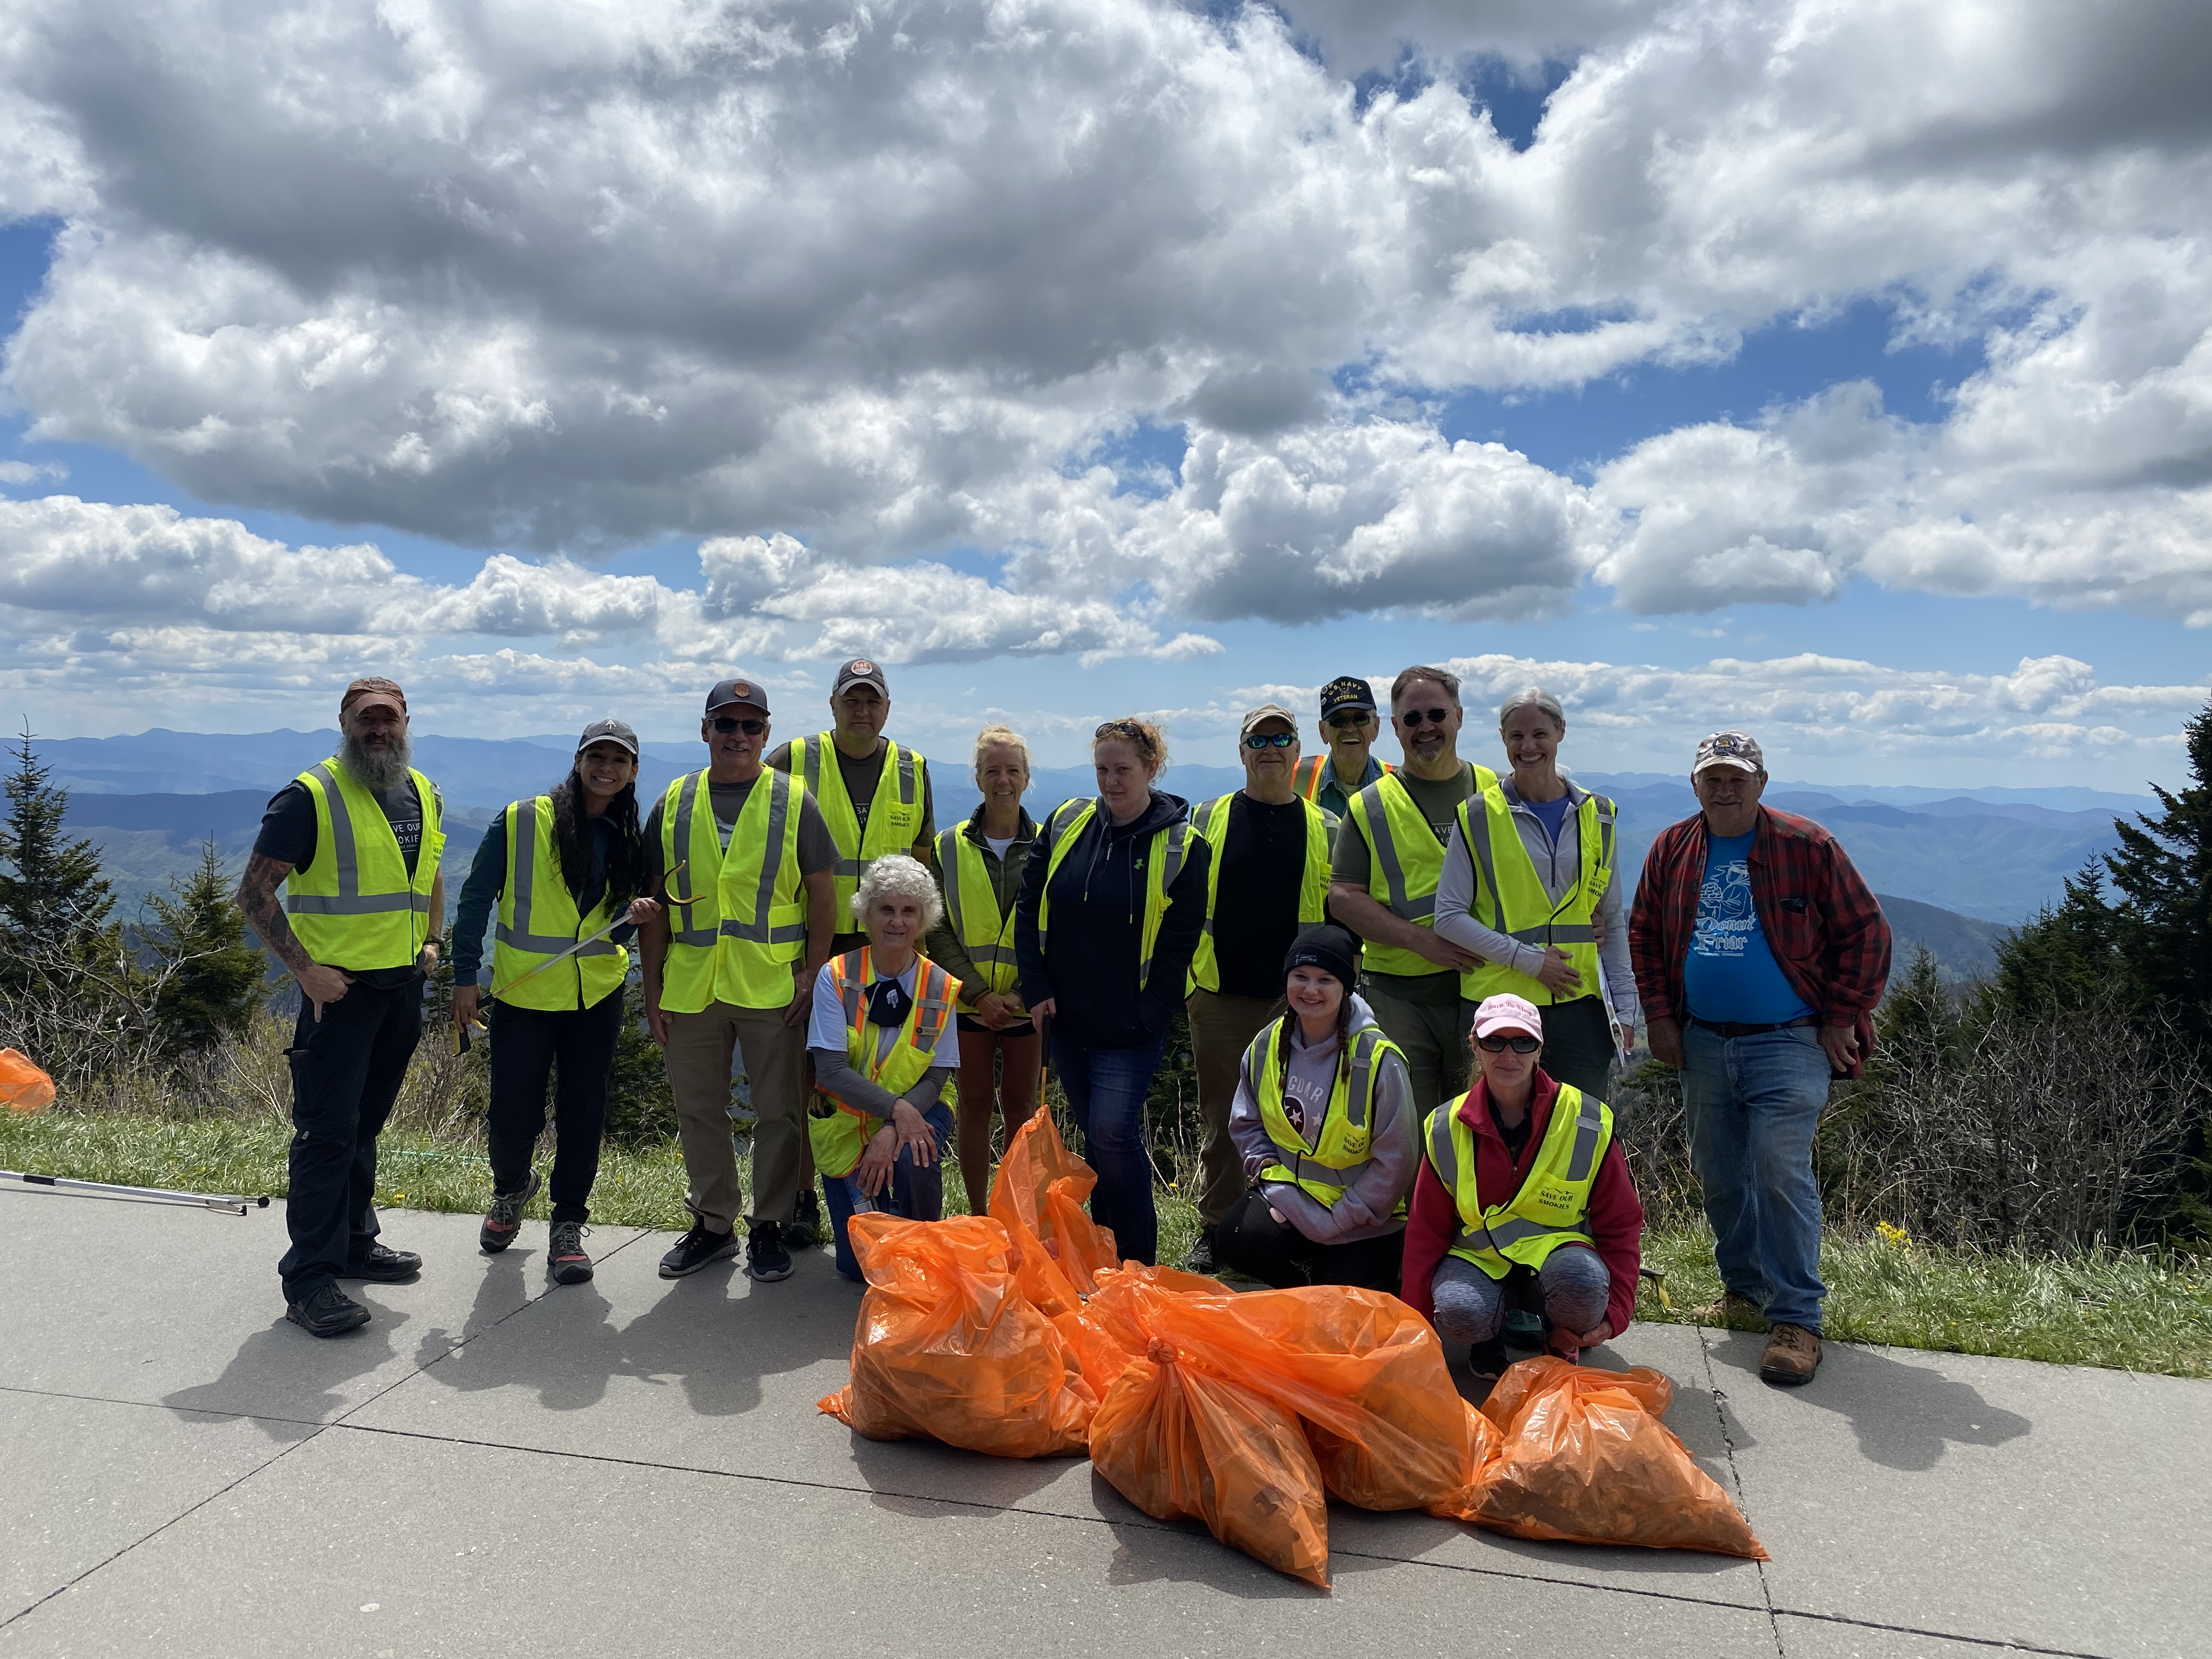 Litter Patrol volunteers who worked together in May of 2021 on a Clingmans Dome Road cleanup in Great Smoky Mountains National Park. Image courtesy of Jerry and Darlene Willis.